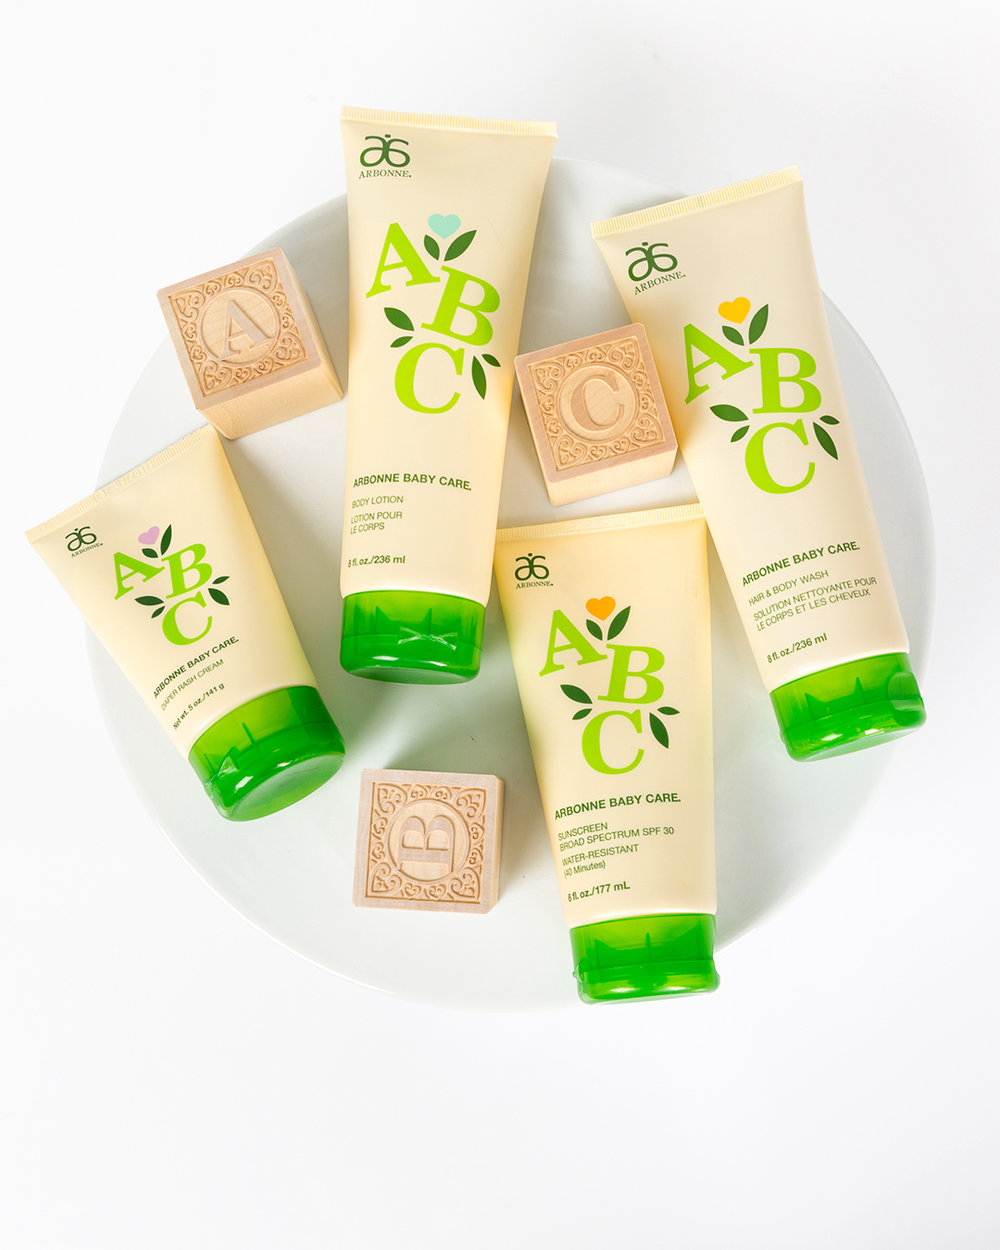 Baby Care Set - Formulated for baby's delicate skin using pure, safe, beneficial ingredients.